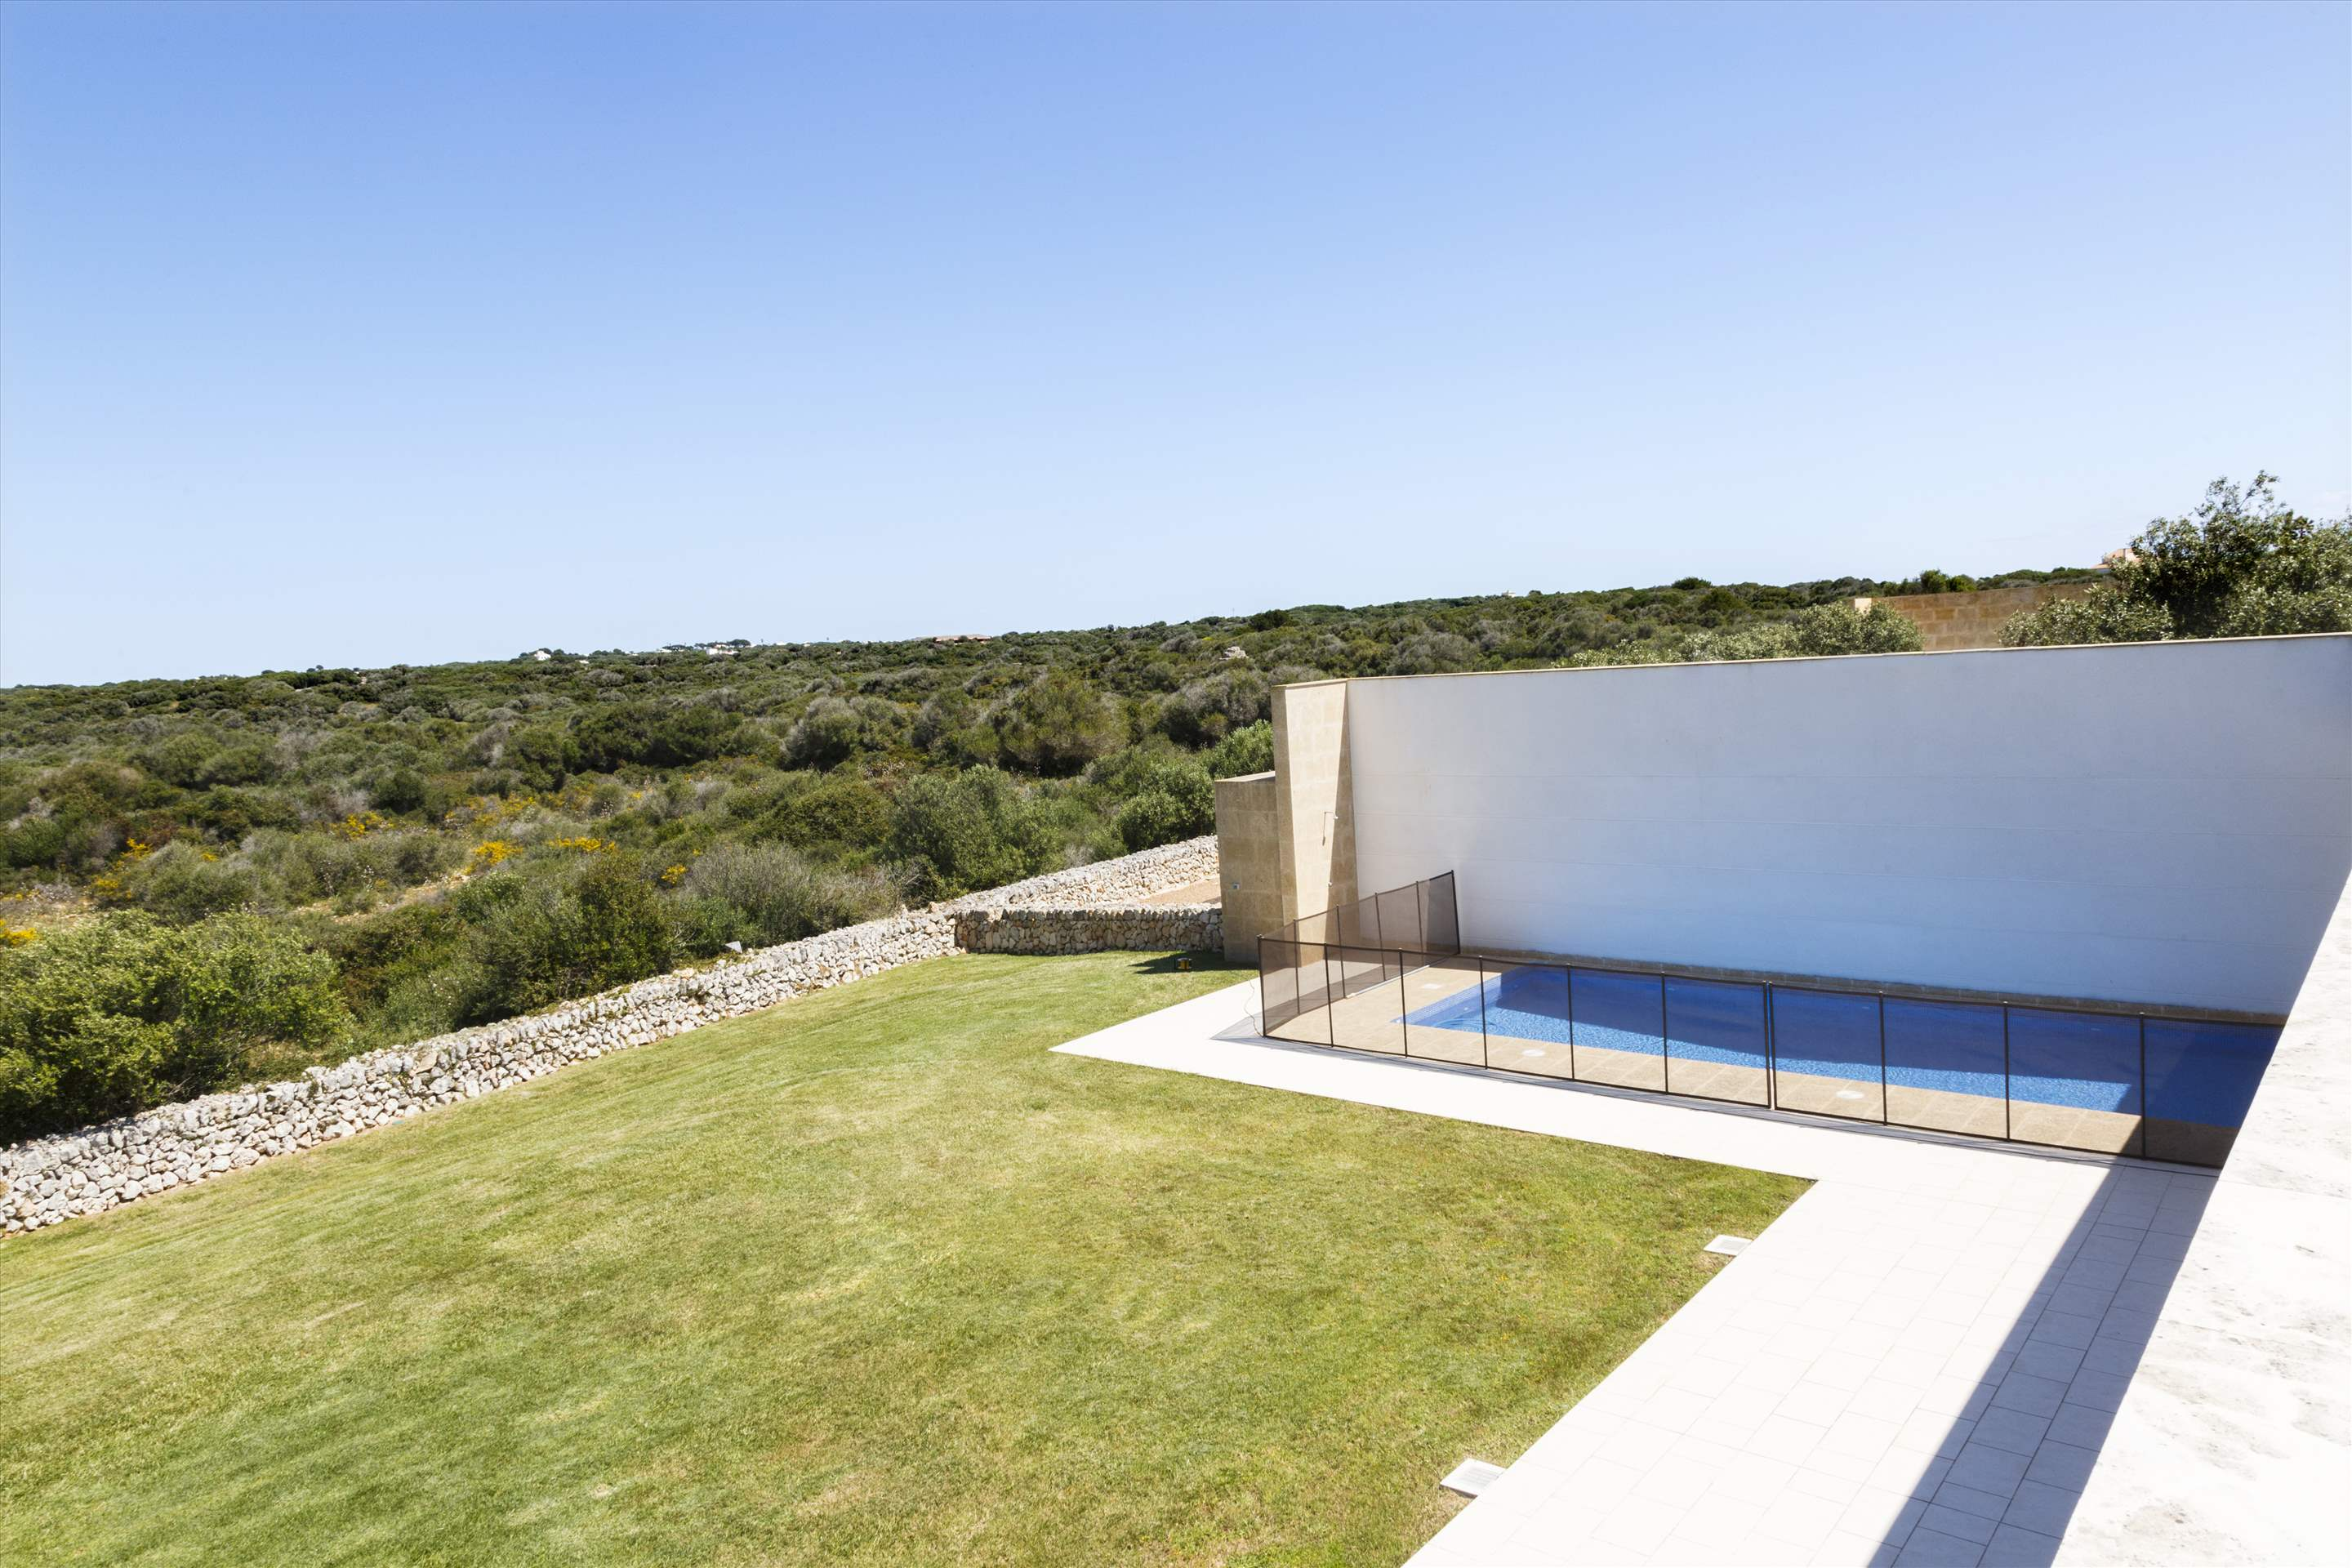 Binibeca Hills , 5 bedroom, 5 bedroom villa in Mahon, San Luis & South East, Menorca Photo #15